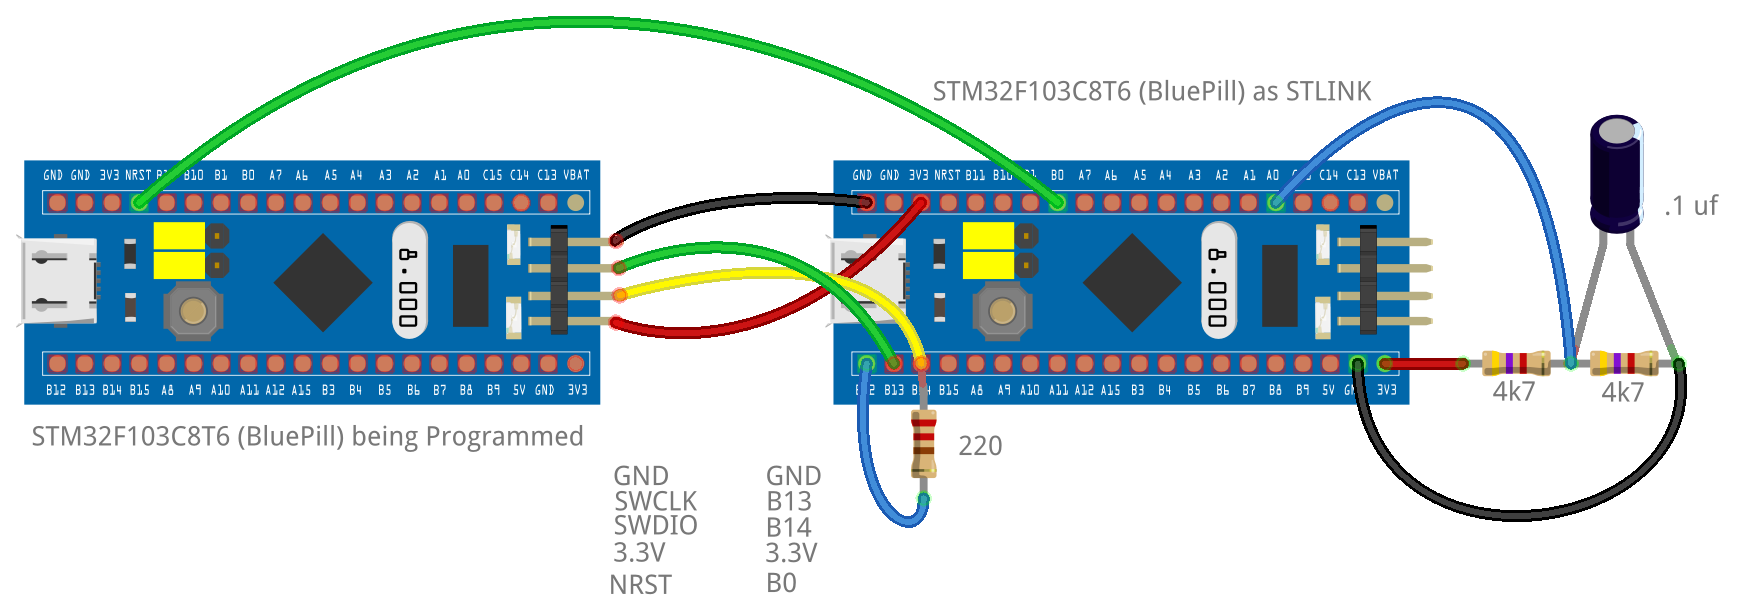 Turn an STM32F103C8T6 (BluePlll) into an STLink Programmer